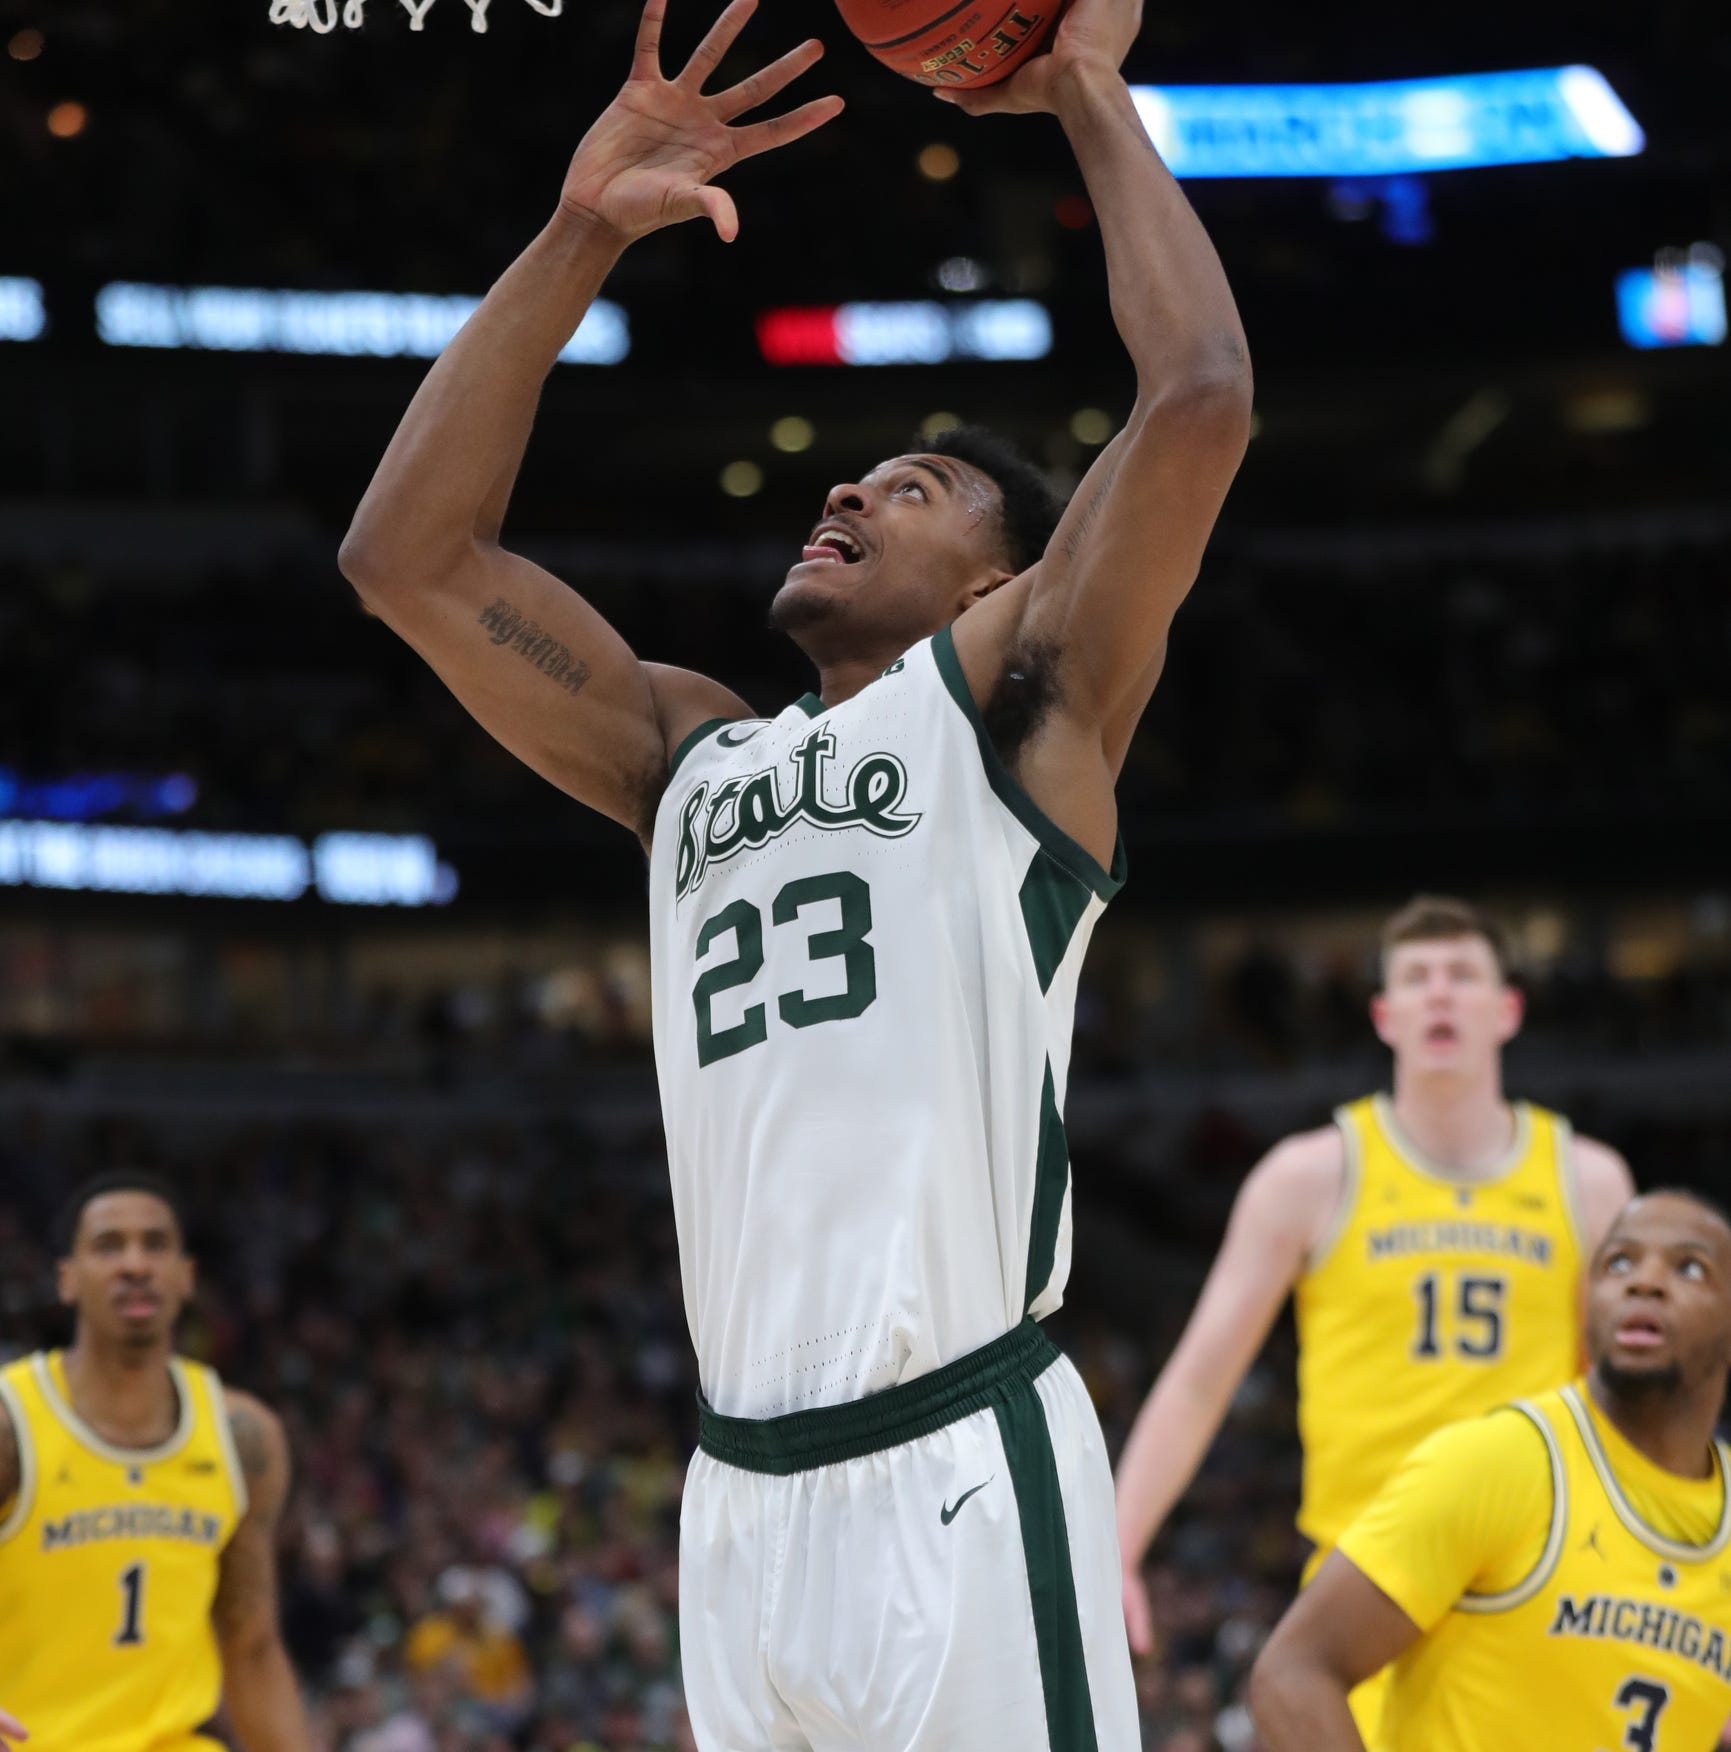 ESPN's Dick Vitale cries foul on Michigan State, Michigan seeding in NCAA